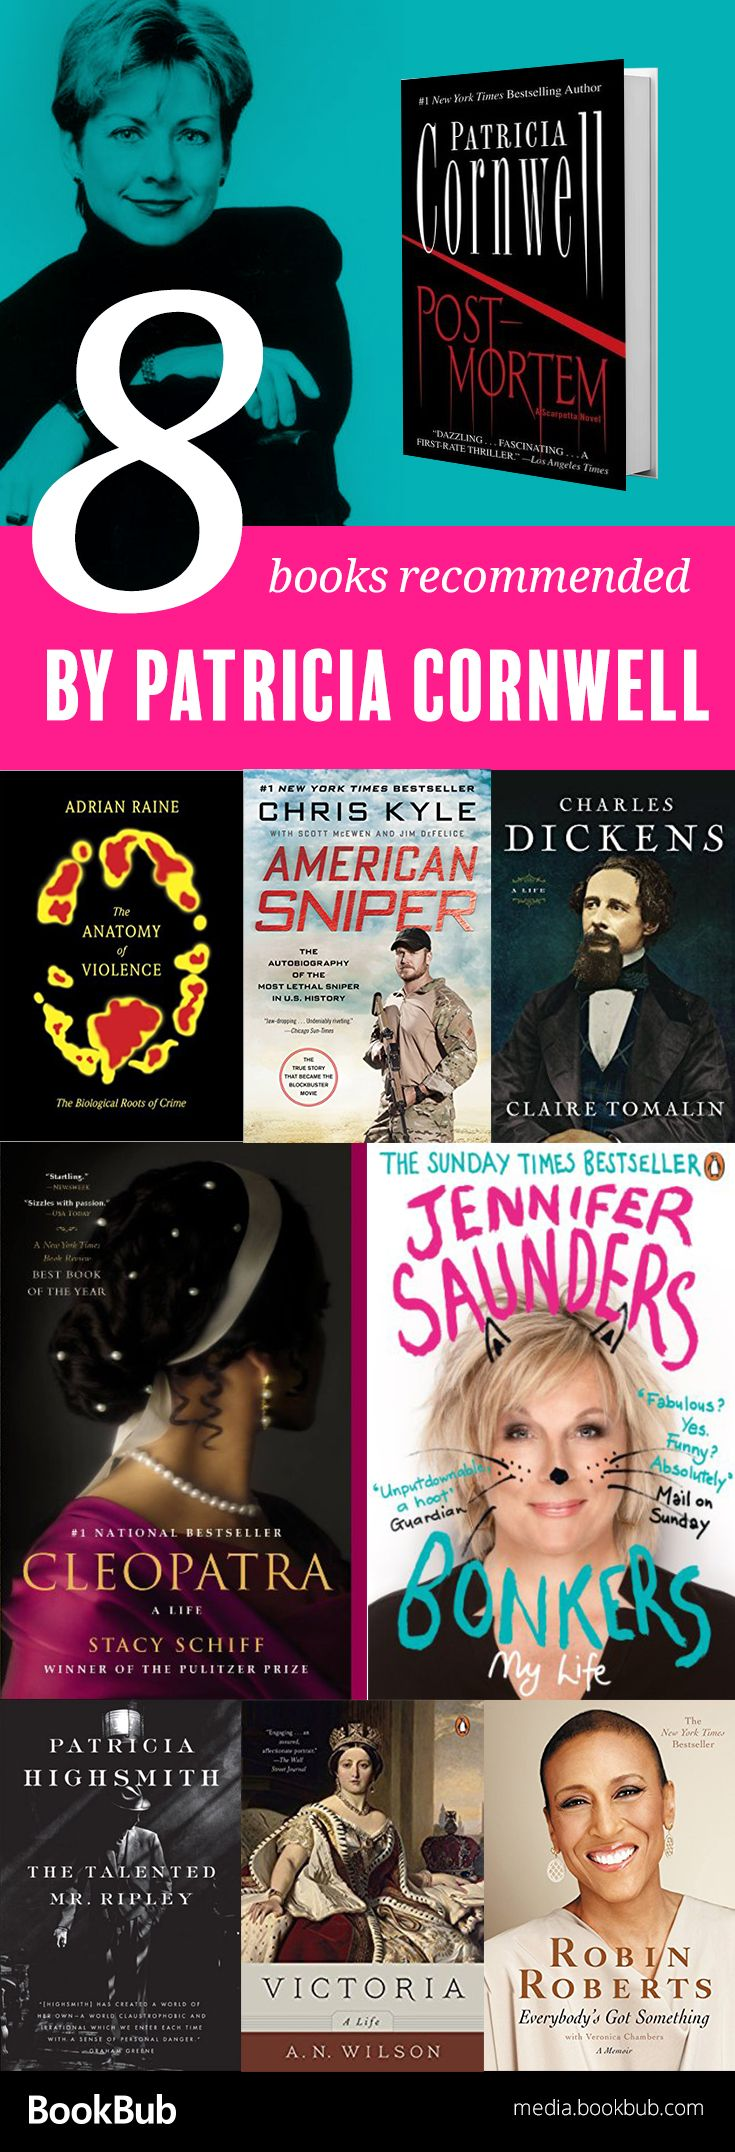 8 Books Recommended By Patricia Cornwell